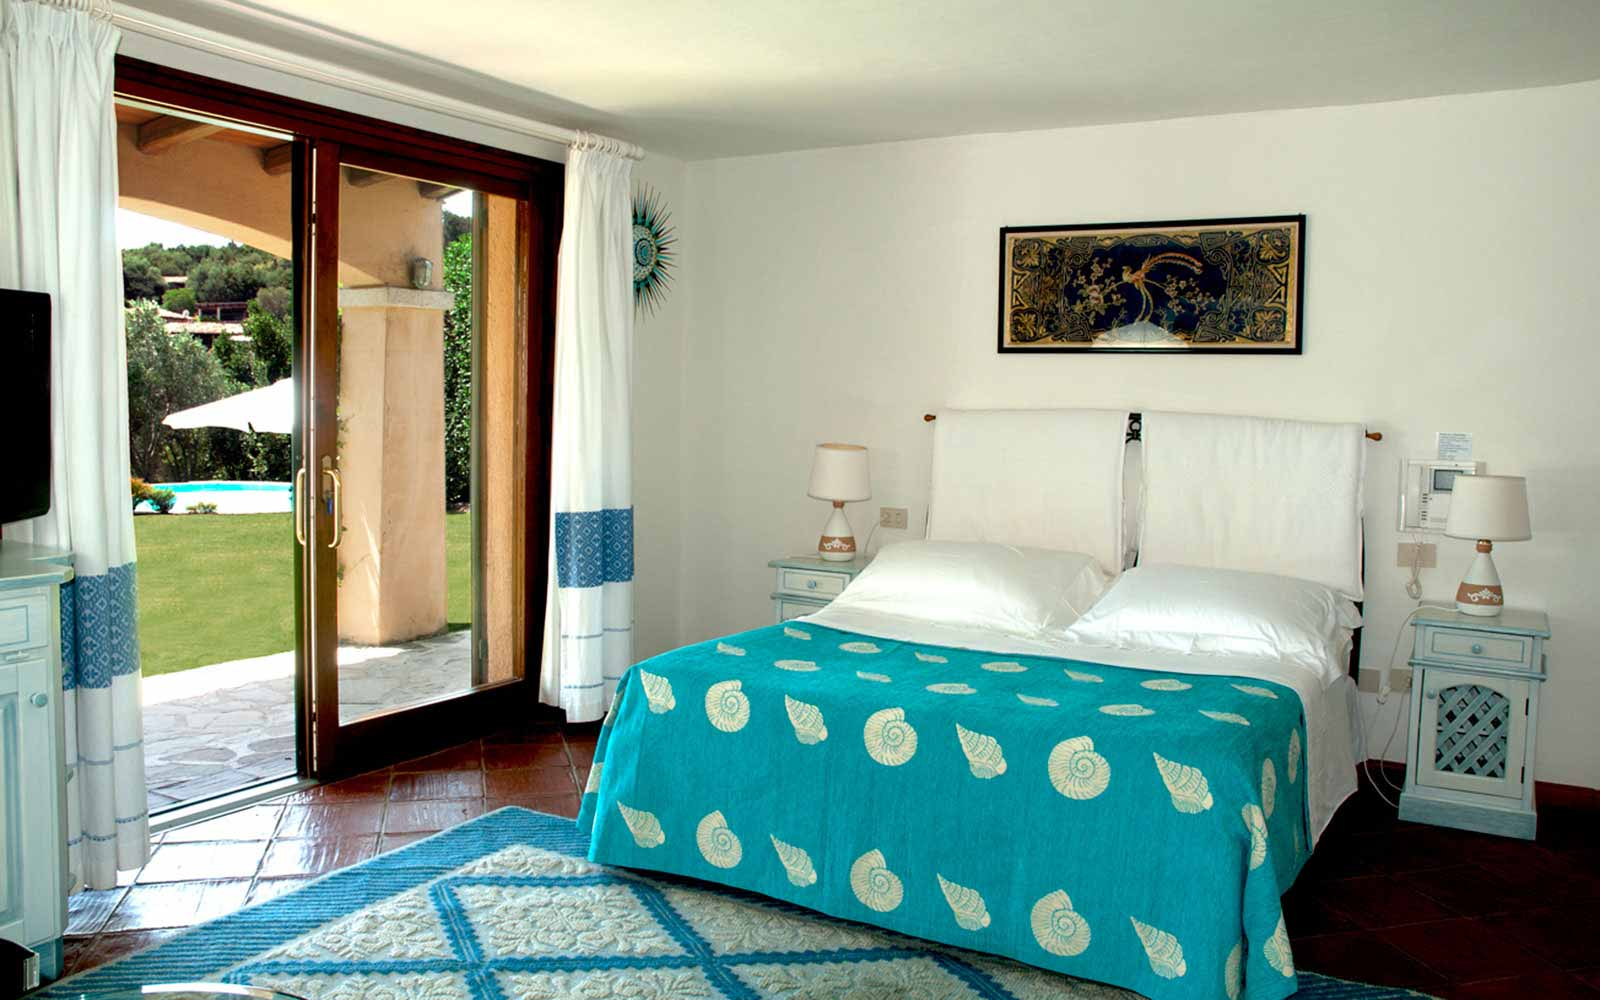 Bedroom at Villa Pedrabianca